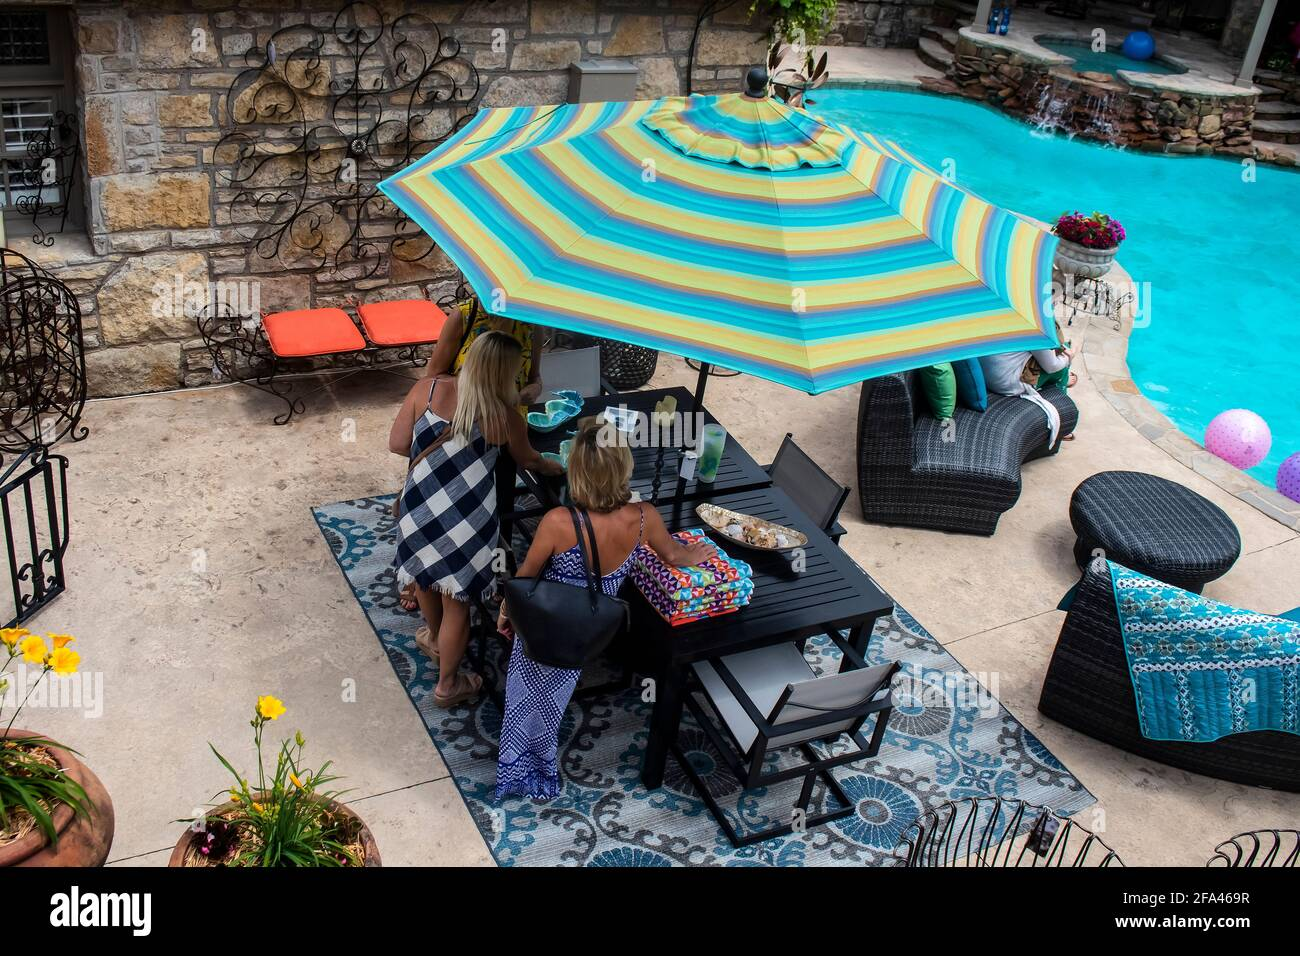 https www alamy com tulsa ok usa 5 20 2018 women standing around patio table beside swimming pool with nice outdoor furniture top view image419288179 html